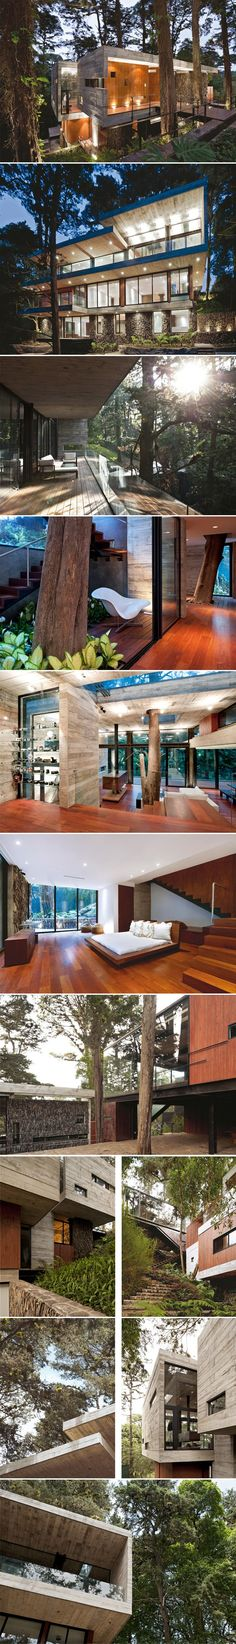 Modem house with minimal interior design focusing on beautiful natural wooden flooring plus the design of the home incorporates a tree into the living space too #architecture...x